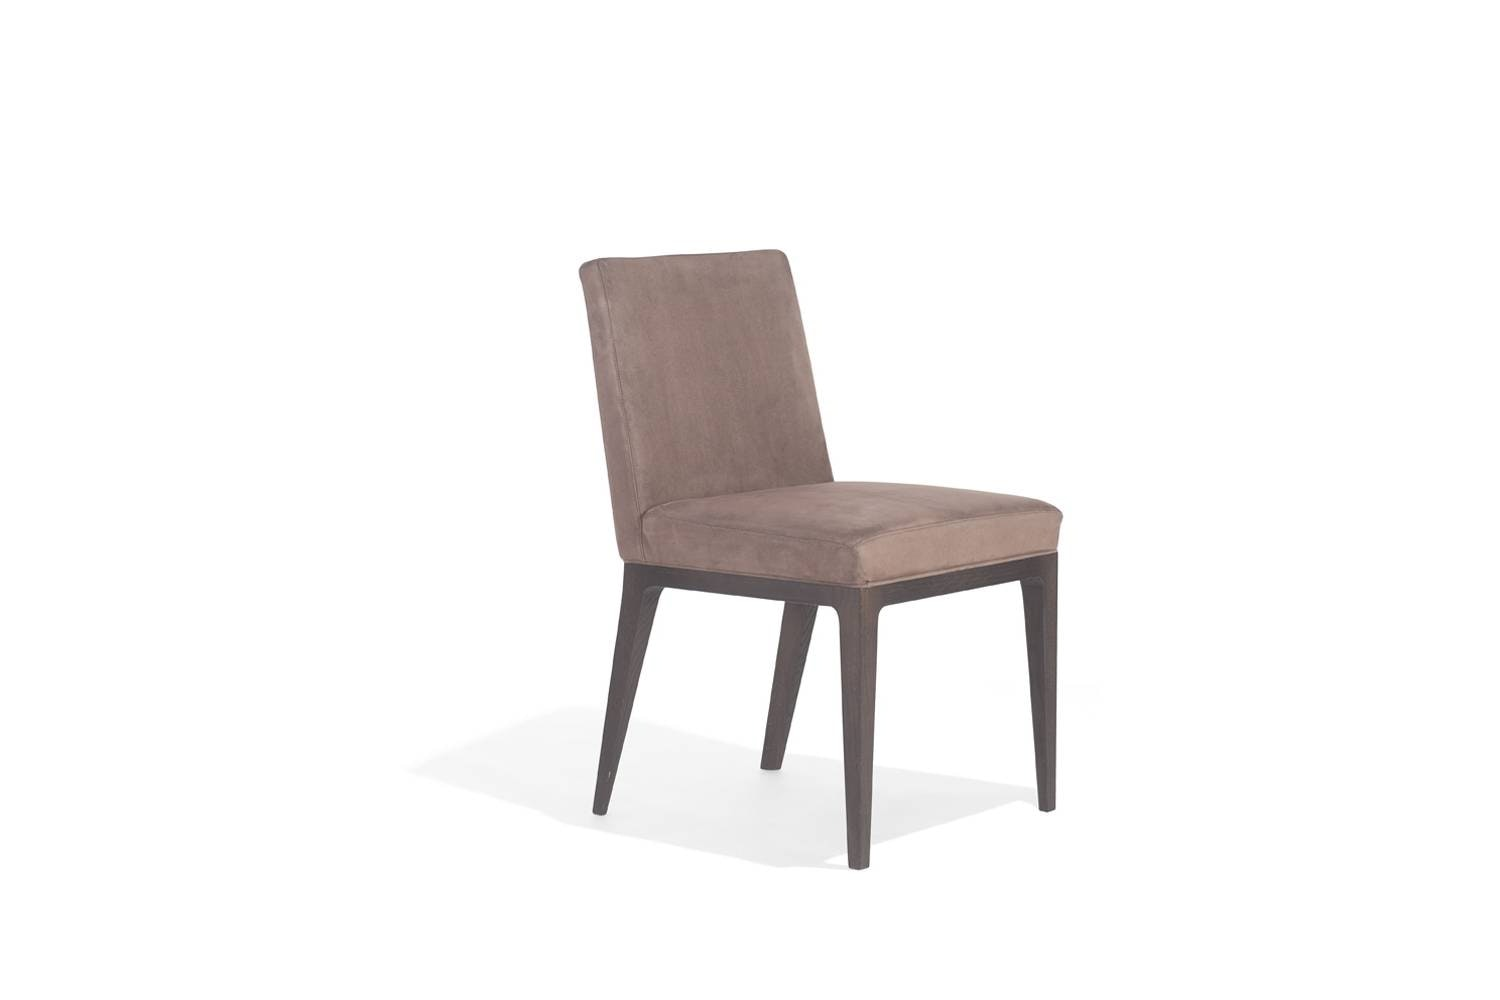 Greta Chair by Enrico Franzolini for Accademia